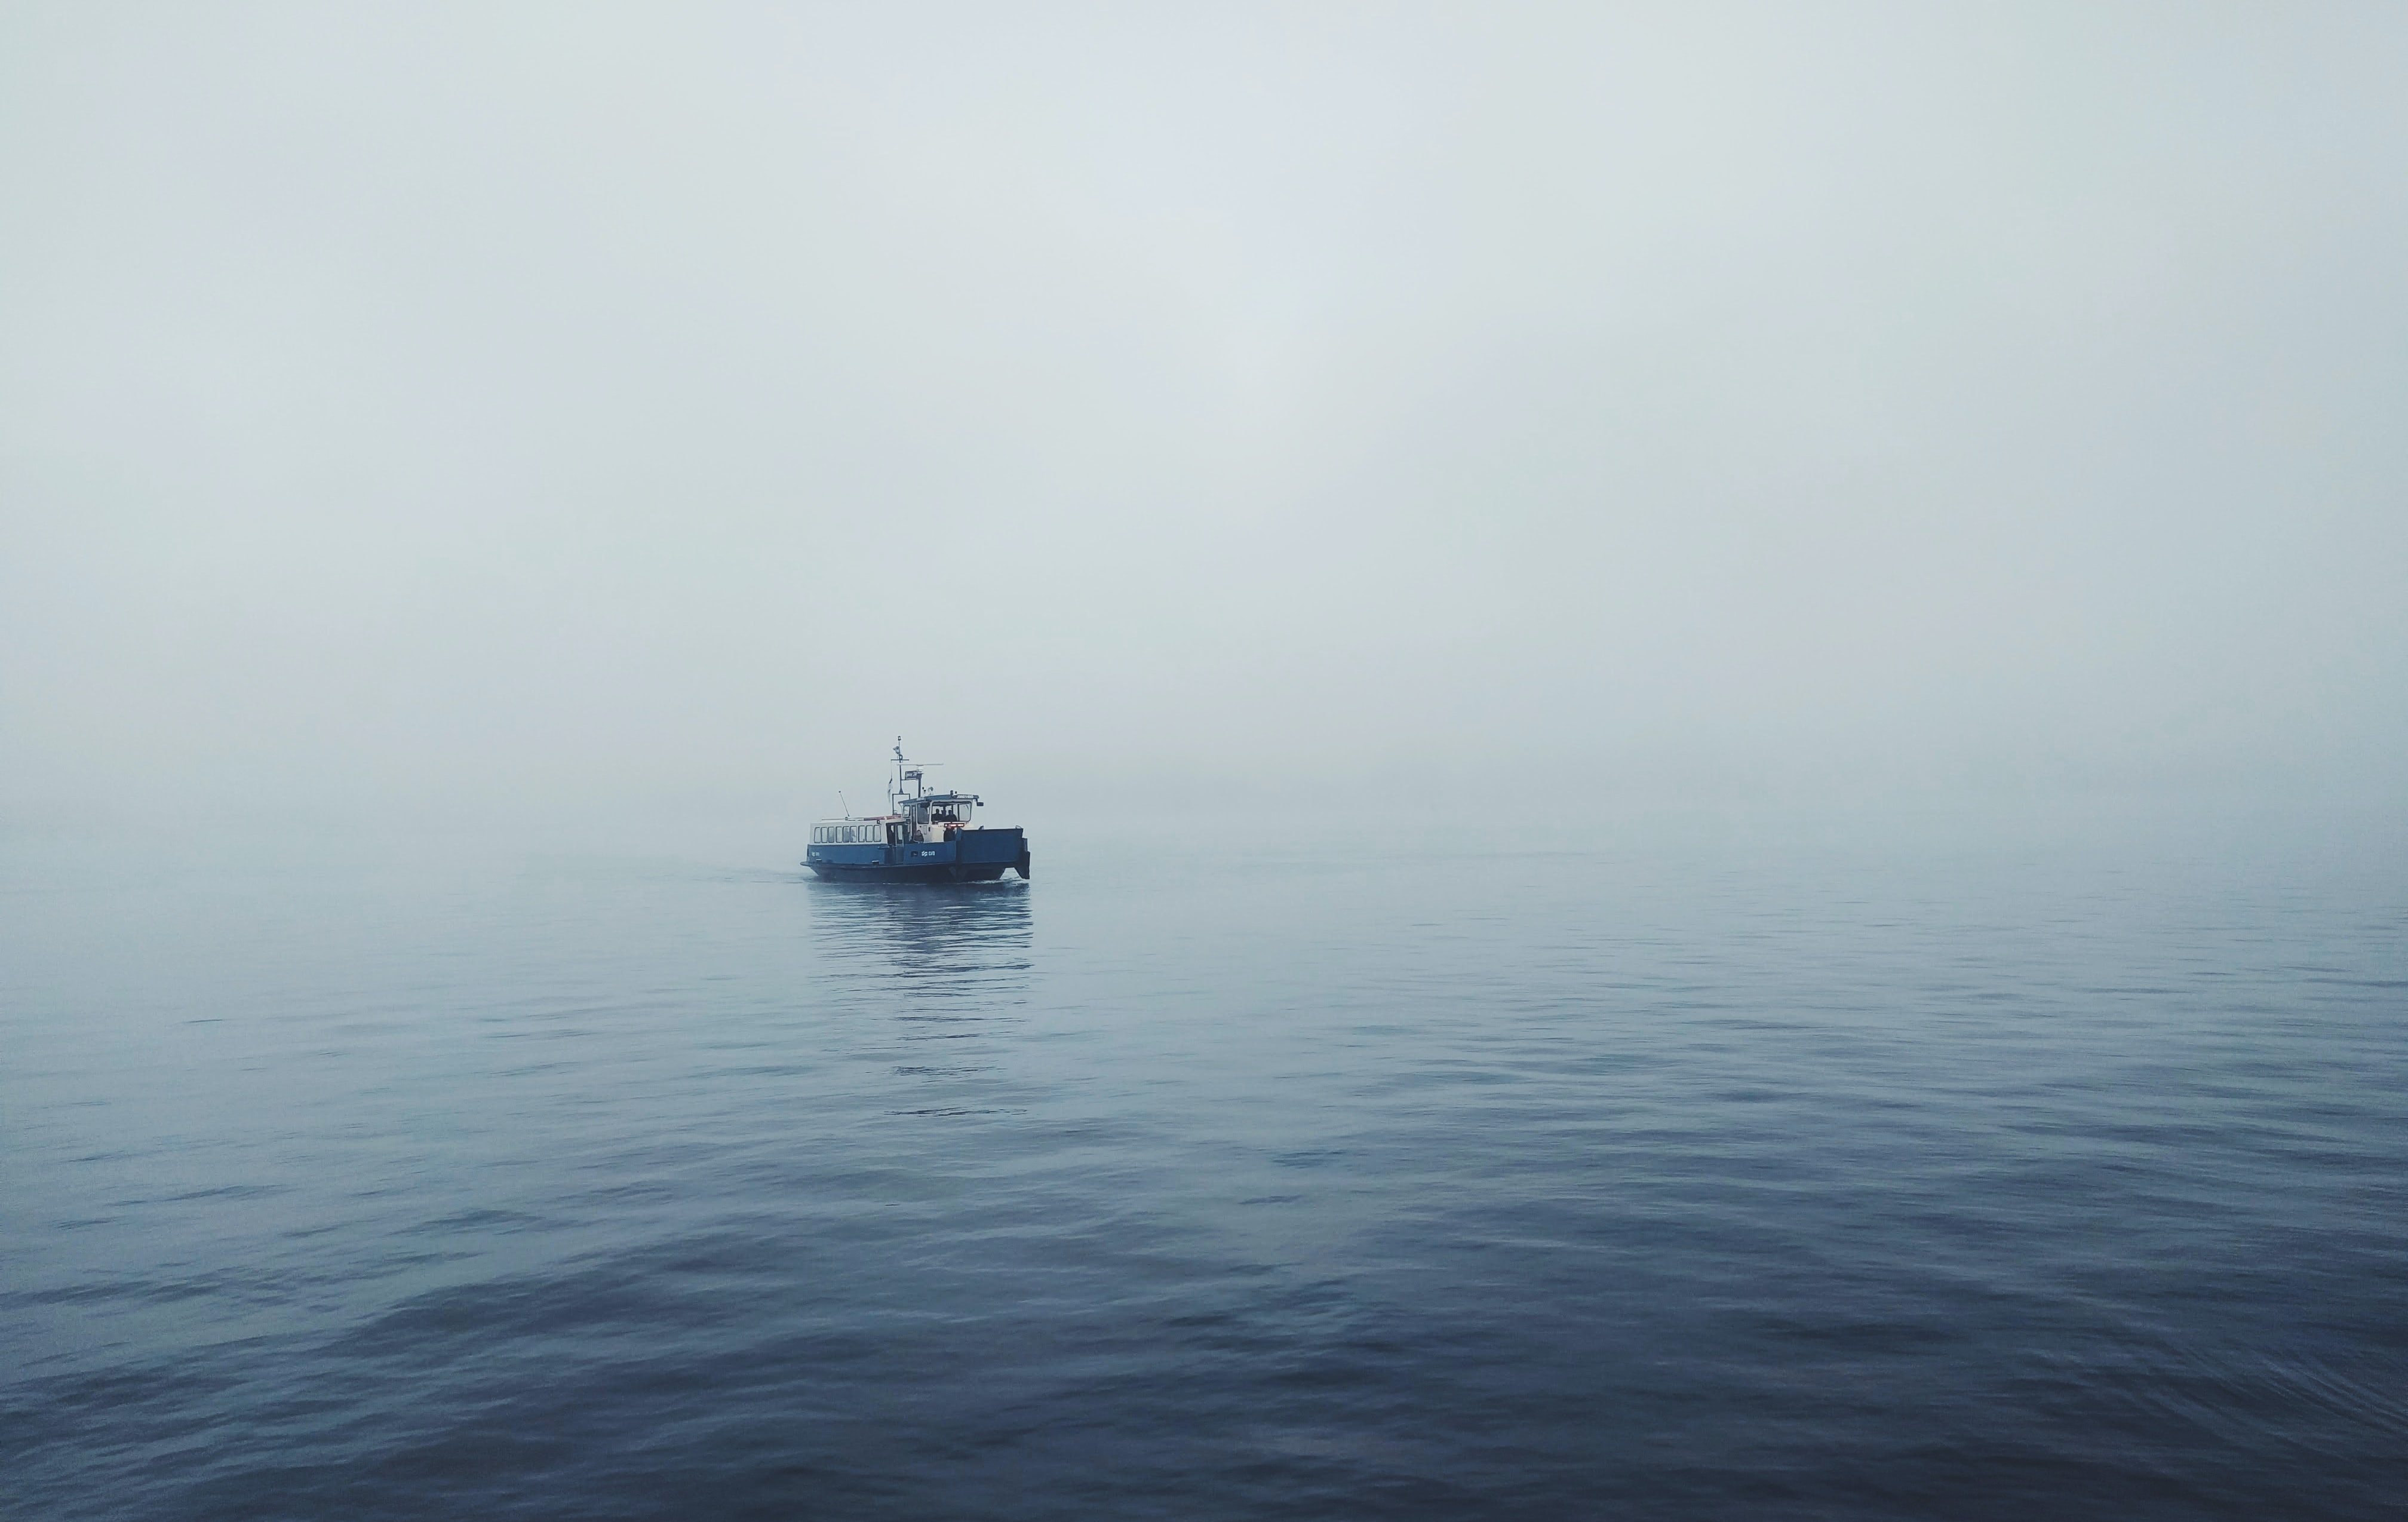 Working boat crosses a foggy sea in Amsterdam